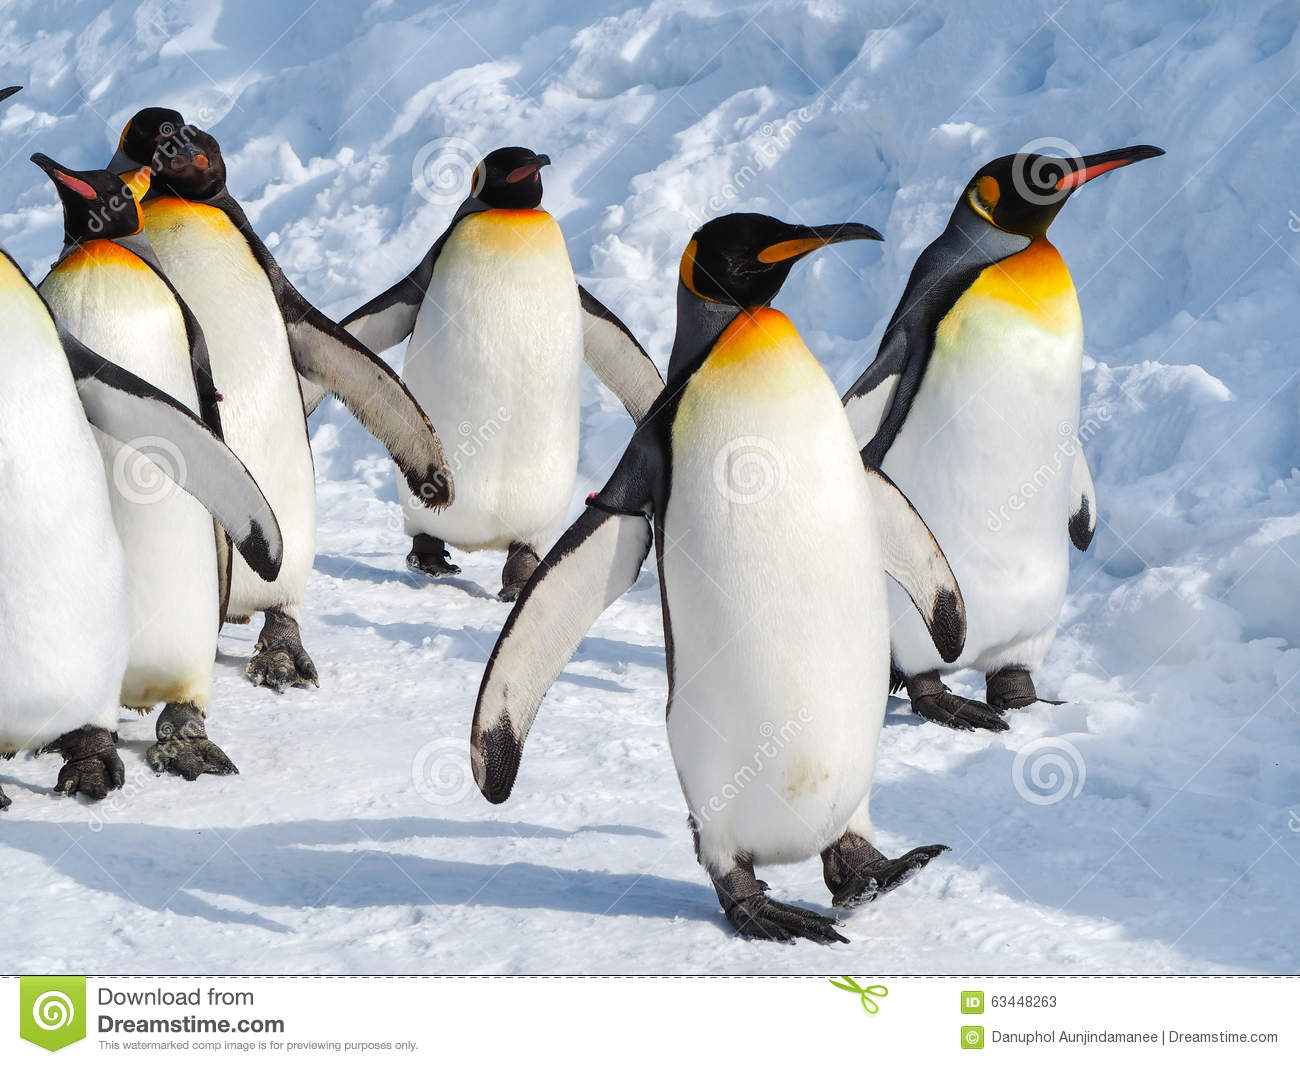 Caminhada do pinguim na neve